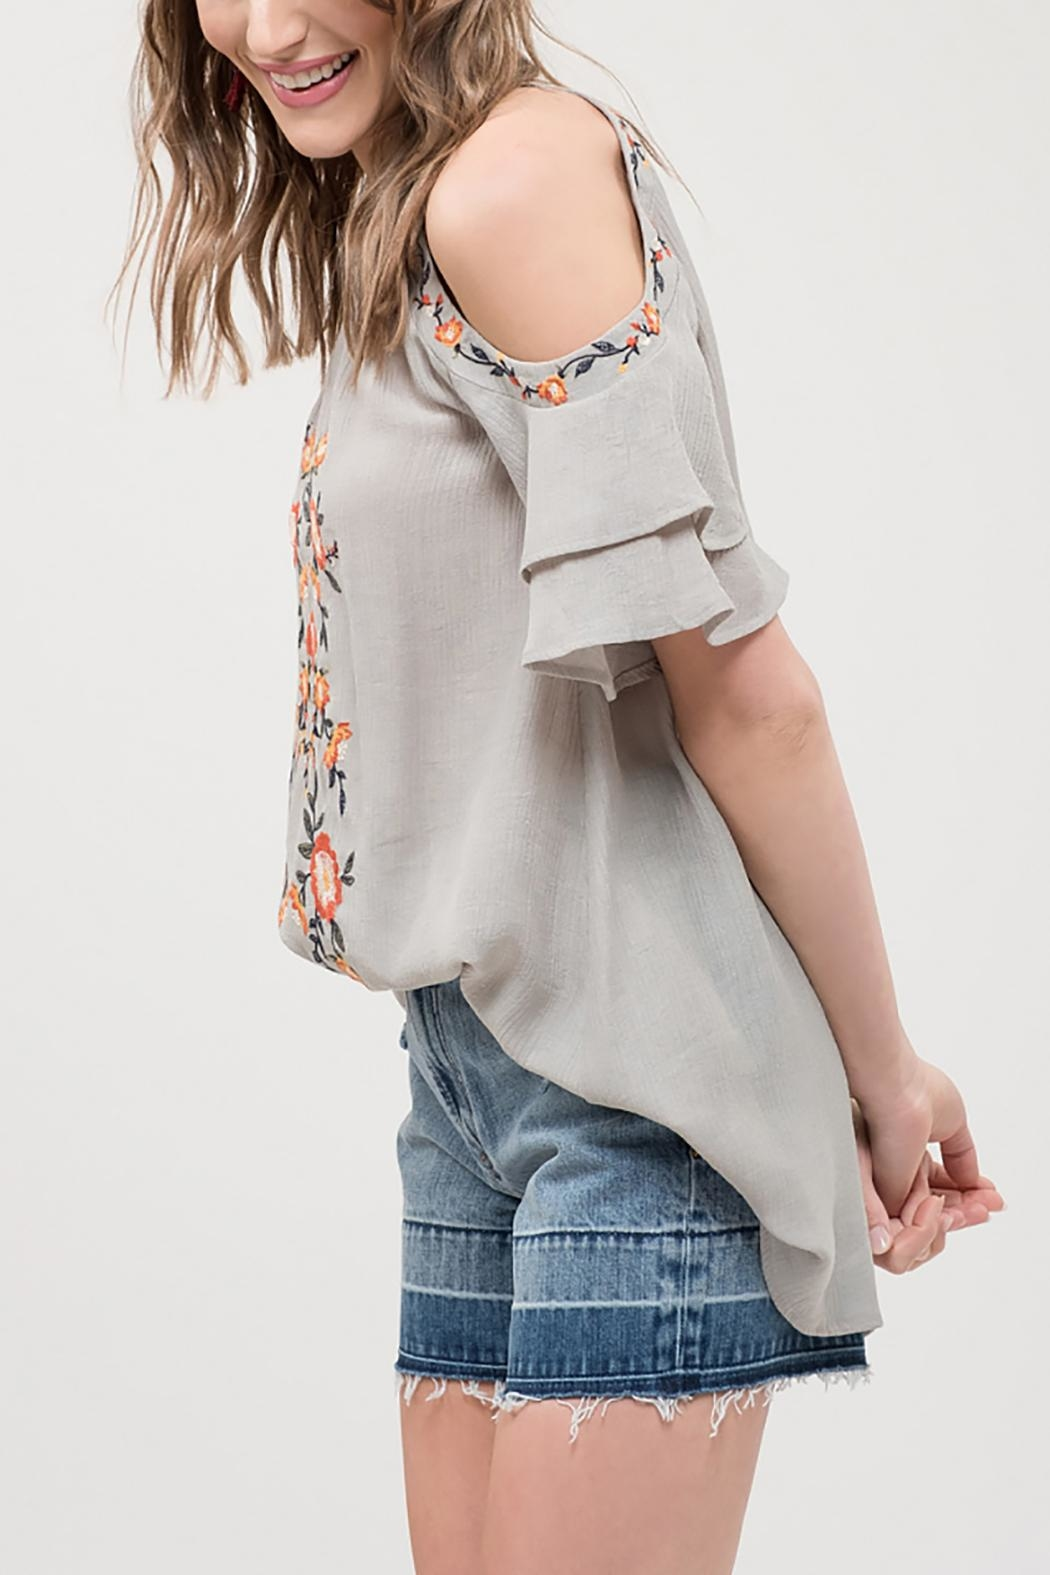 Blu Pepper Embroidered Ruffle Top - Front Full Image